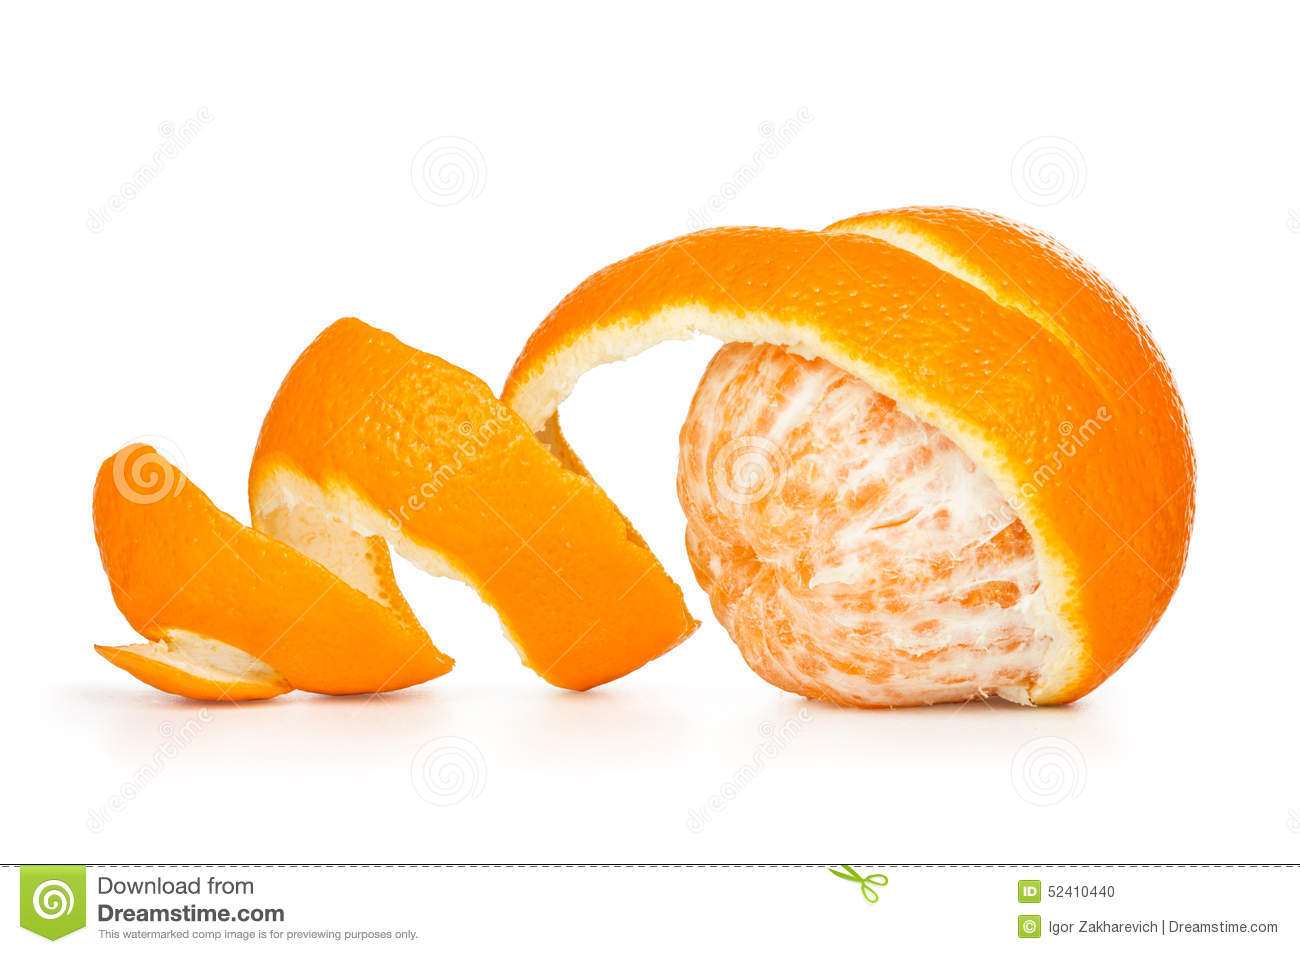 Orange peeled skin